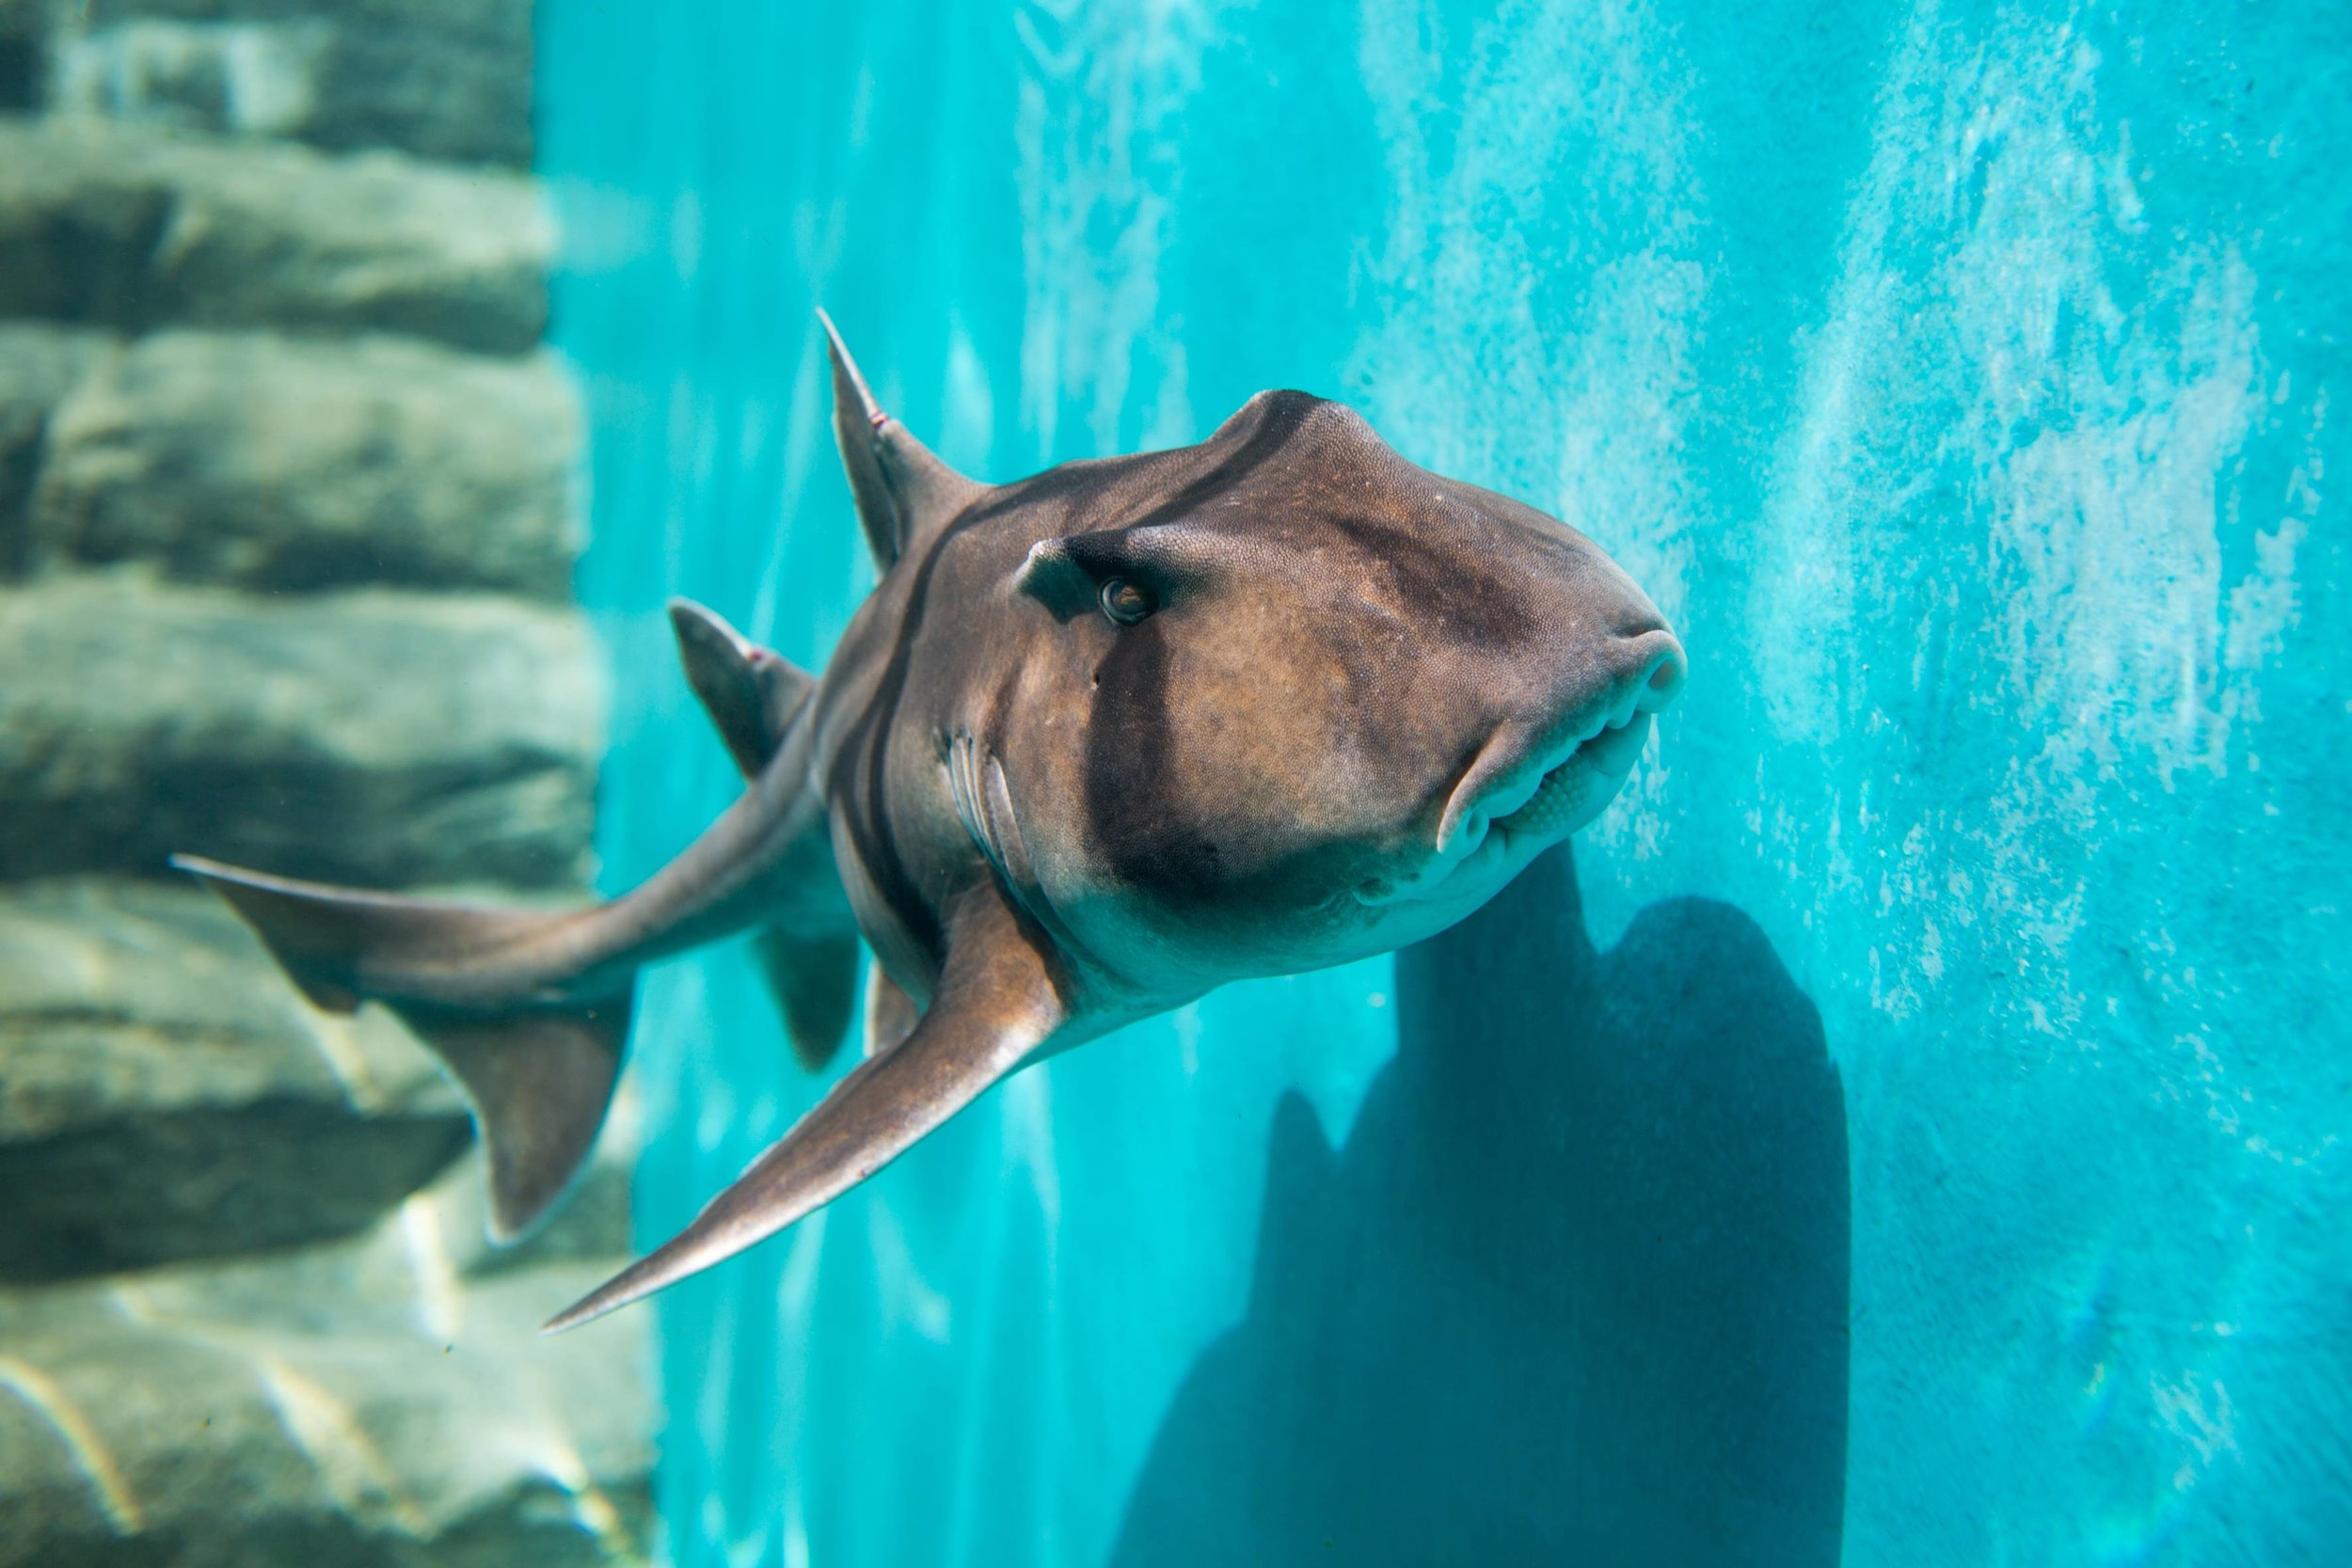 An adult Port Jackson shark. Image by Julianna Kadar.